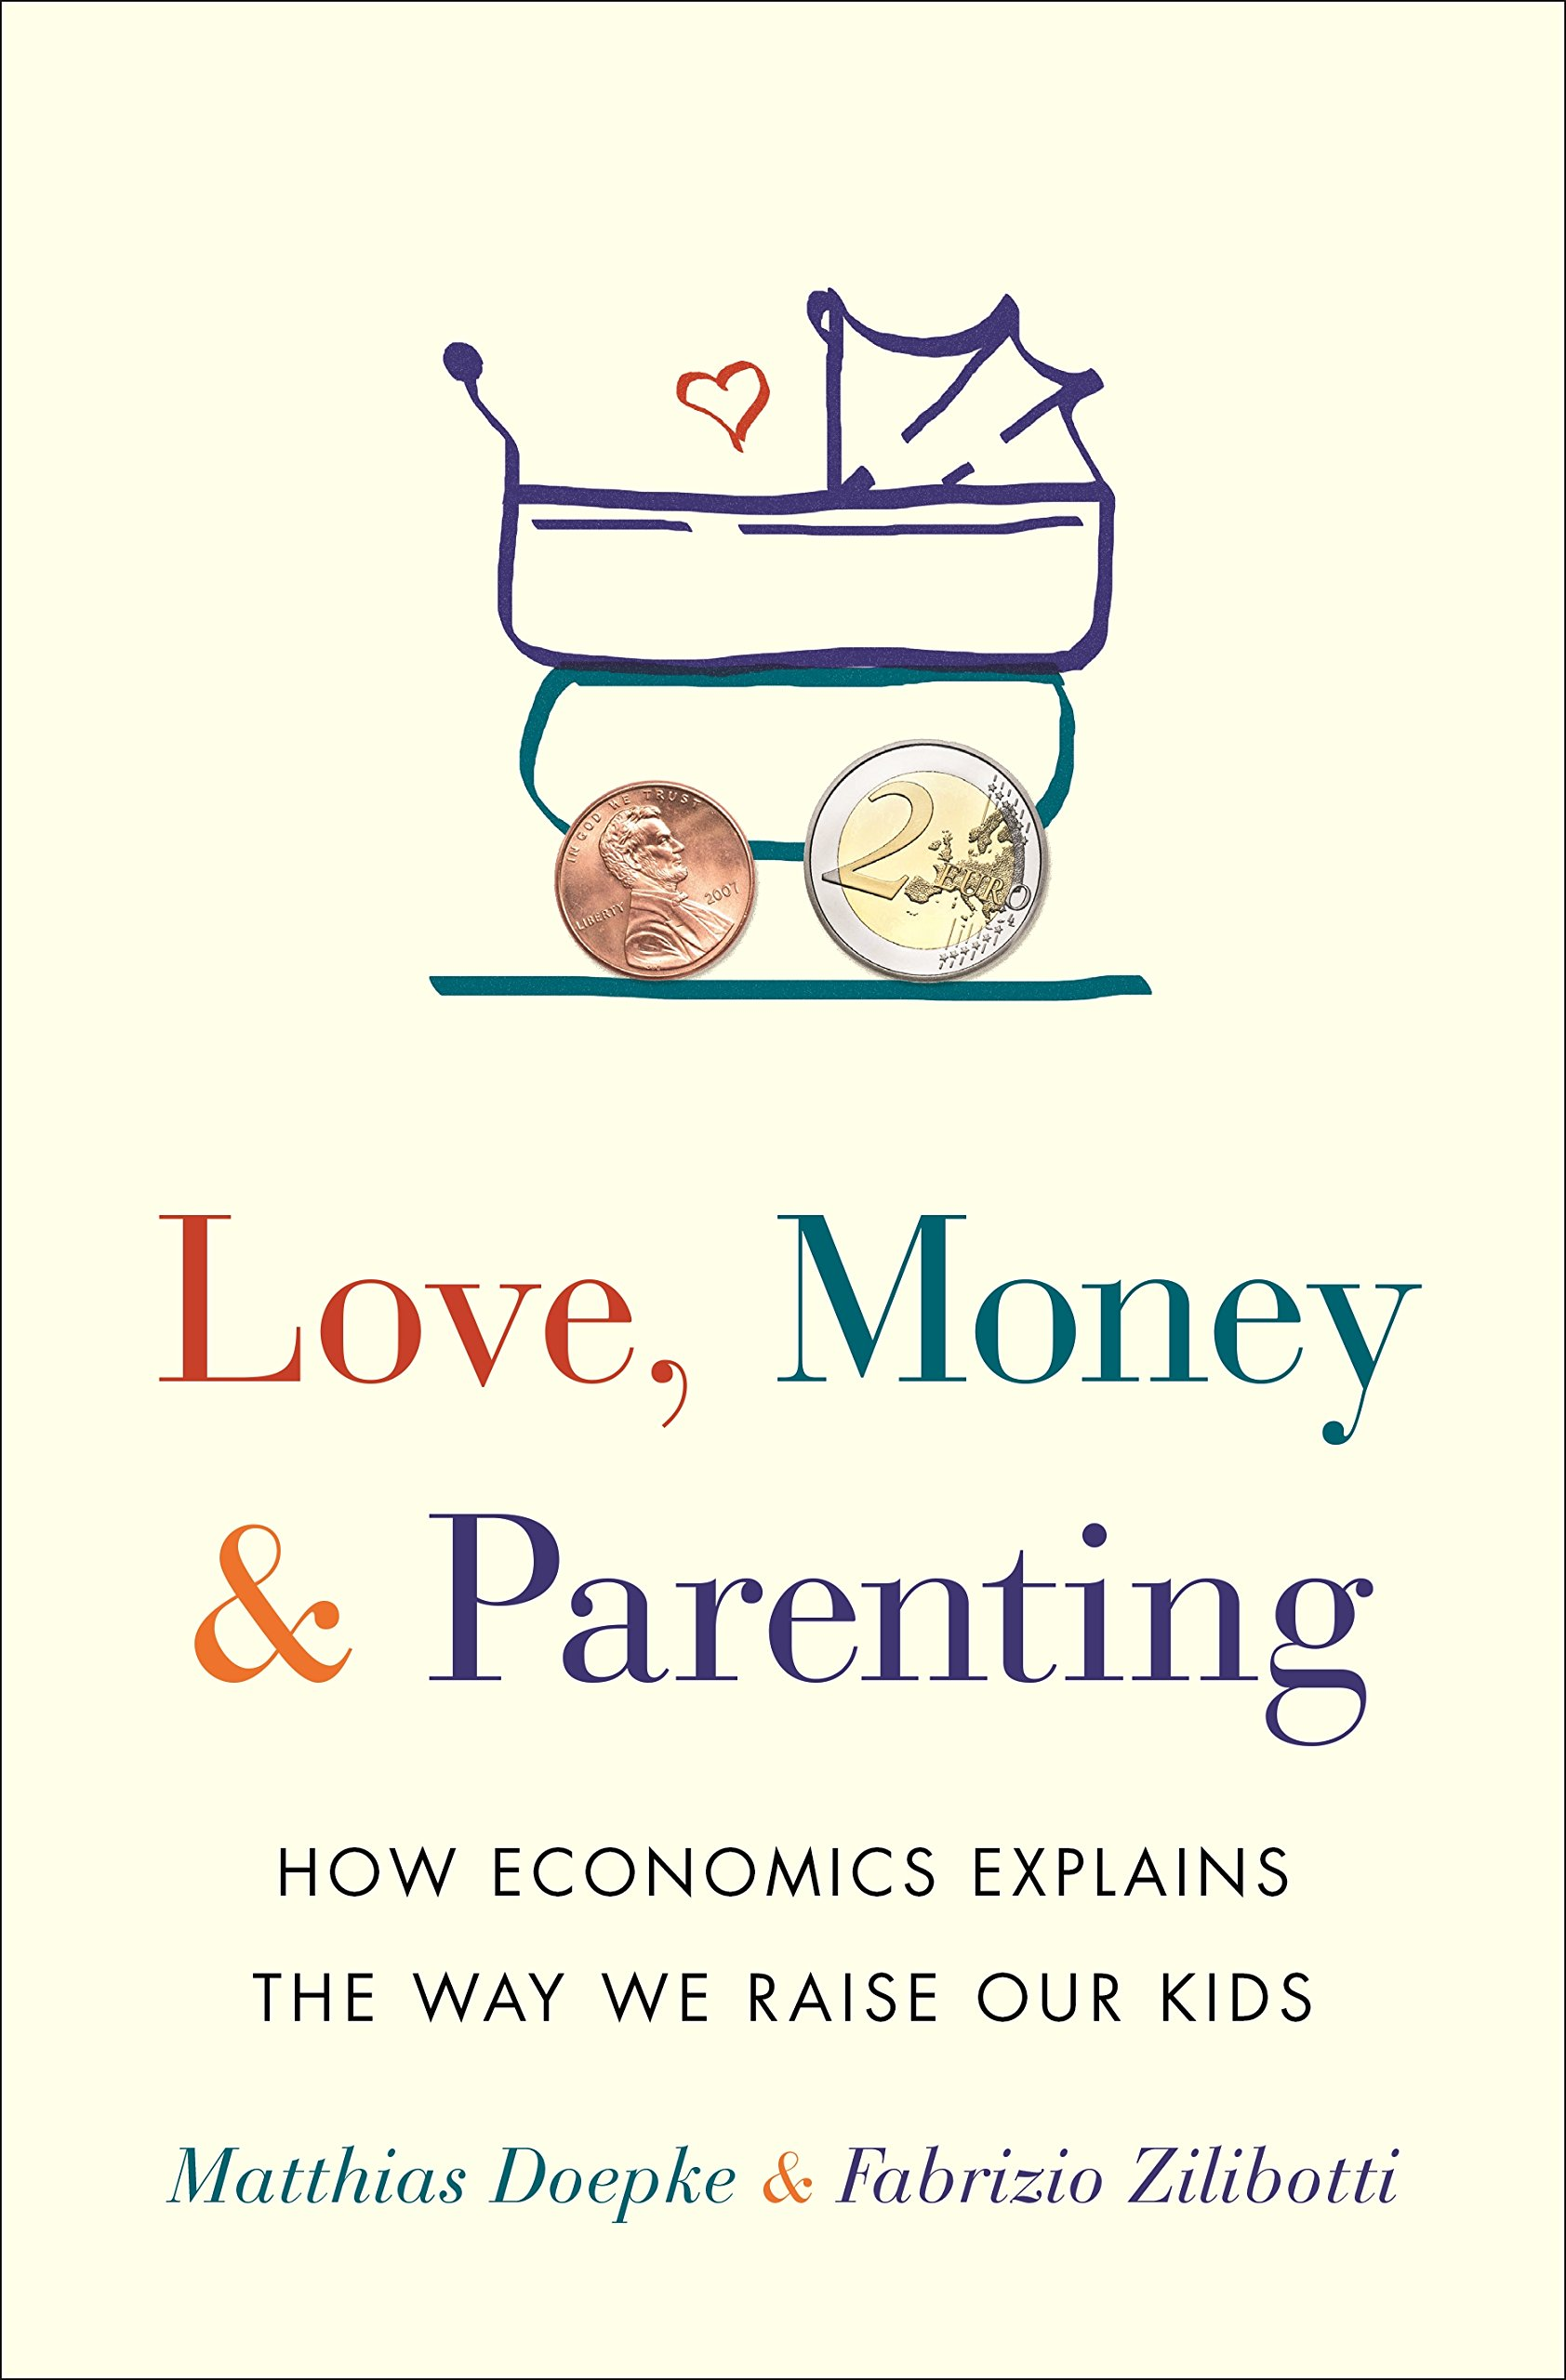 Image OfLove, Money & Parenting: How Economics Explains The Way We Raise Our Kids